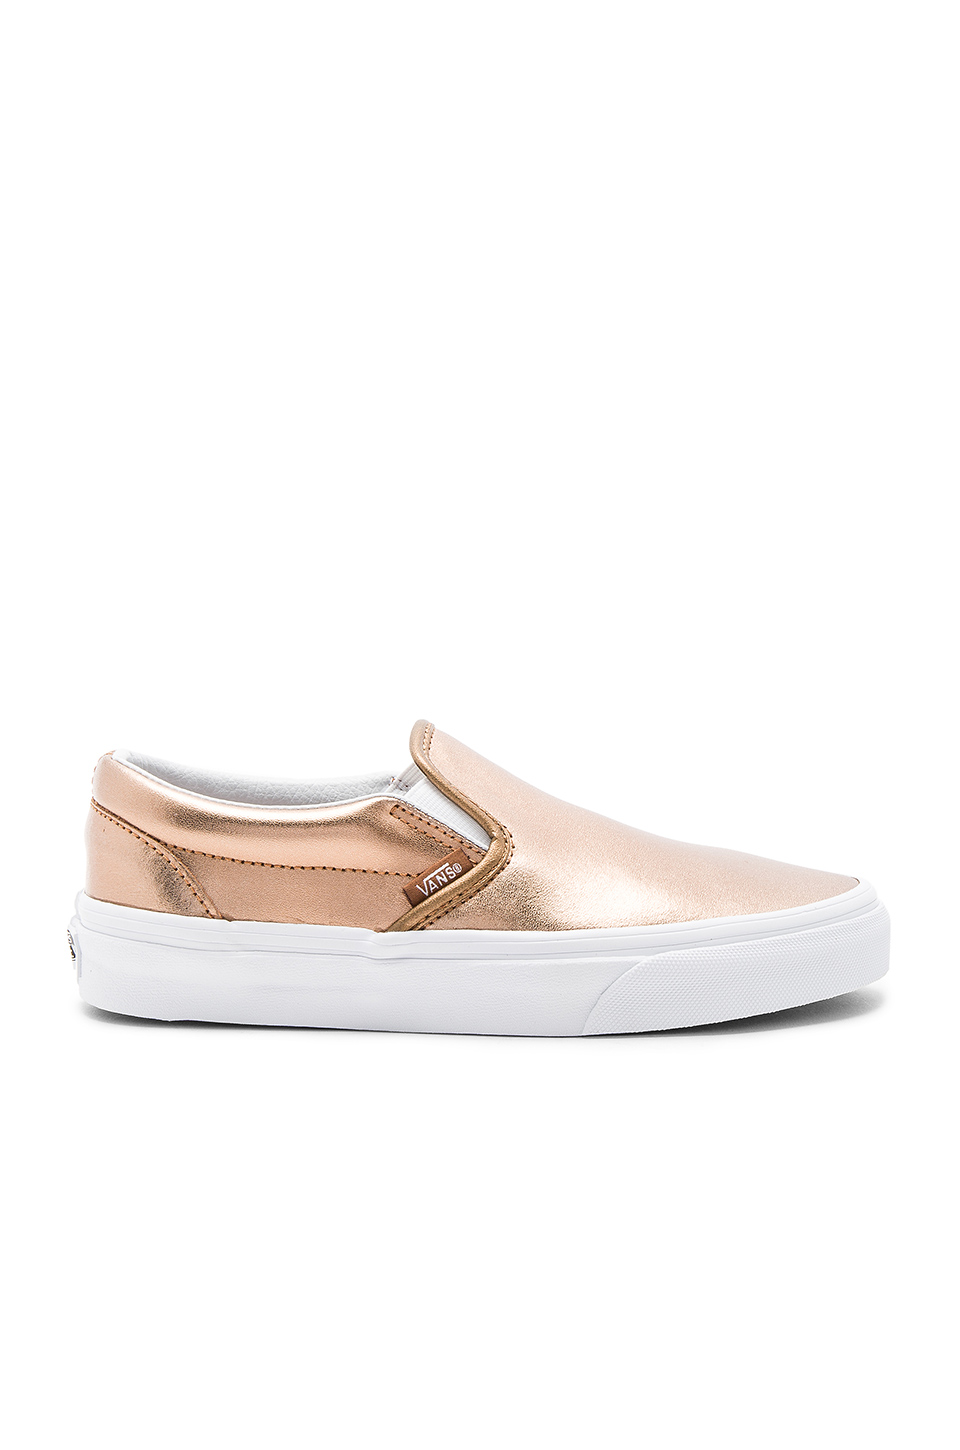 VANS Classic Slip-On Sneaker (Women) at REVOLVE